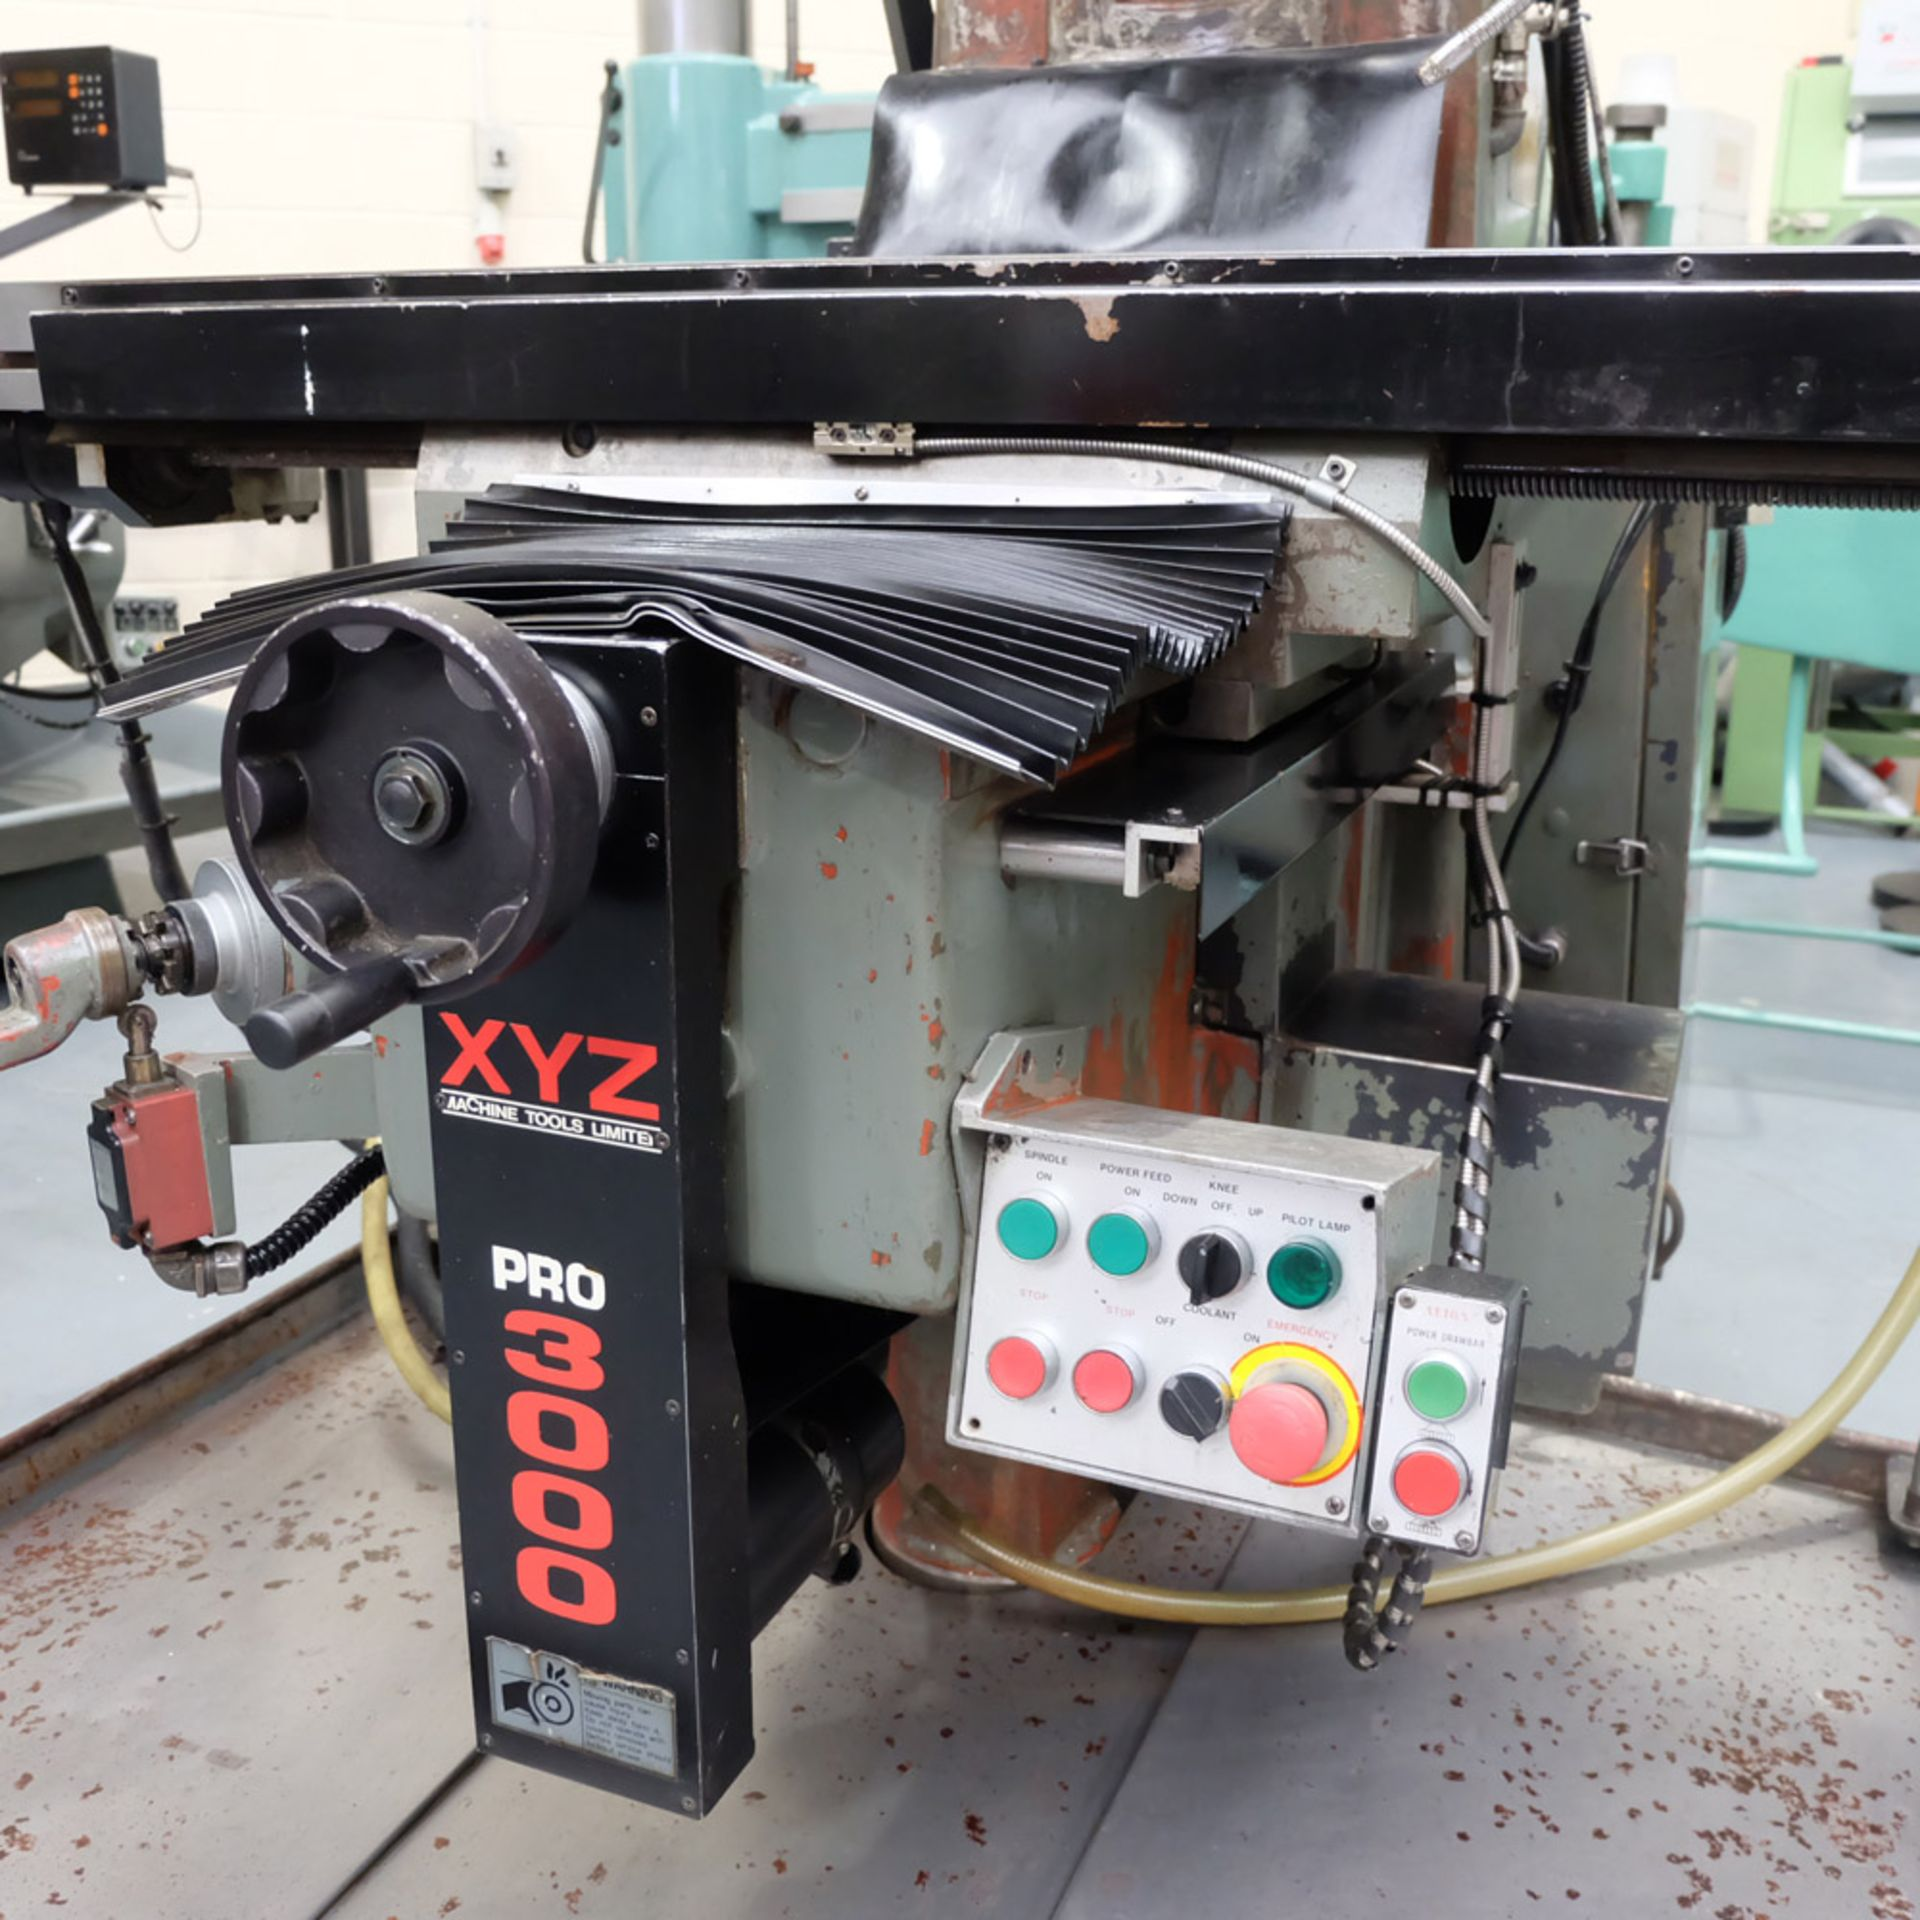 XYZ PRO 3000 Two Axis CNC Milling Machine.ProtoTrak MX2 Two Axis Programmable Control. - Image 8 of 9